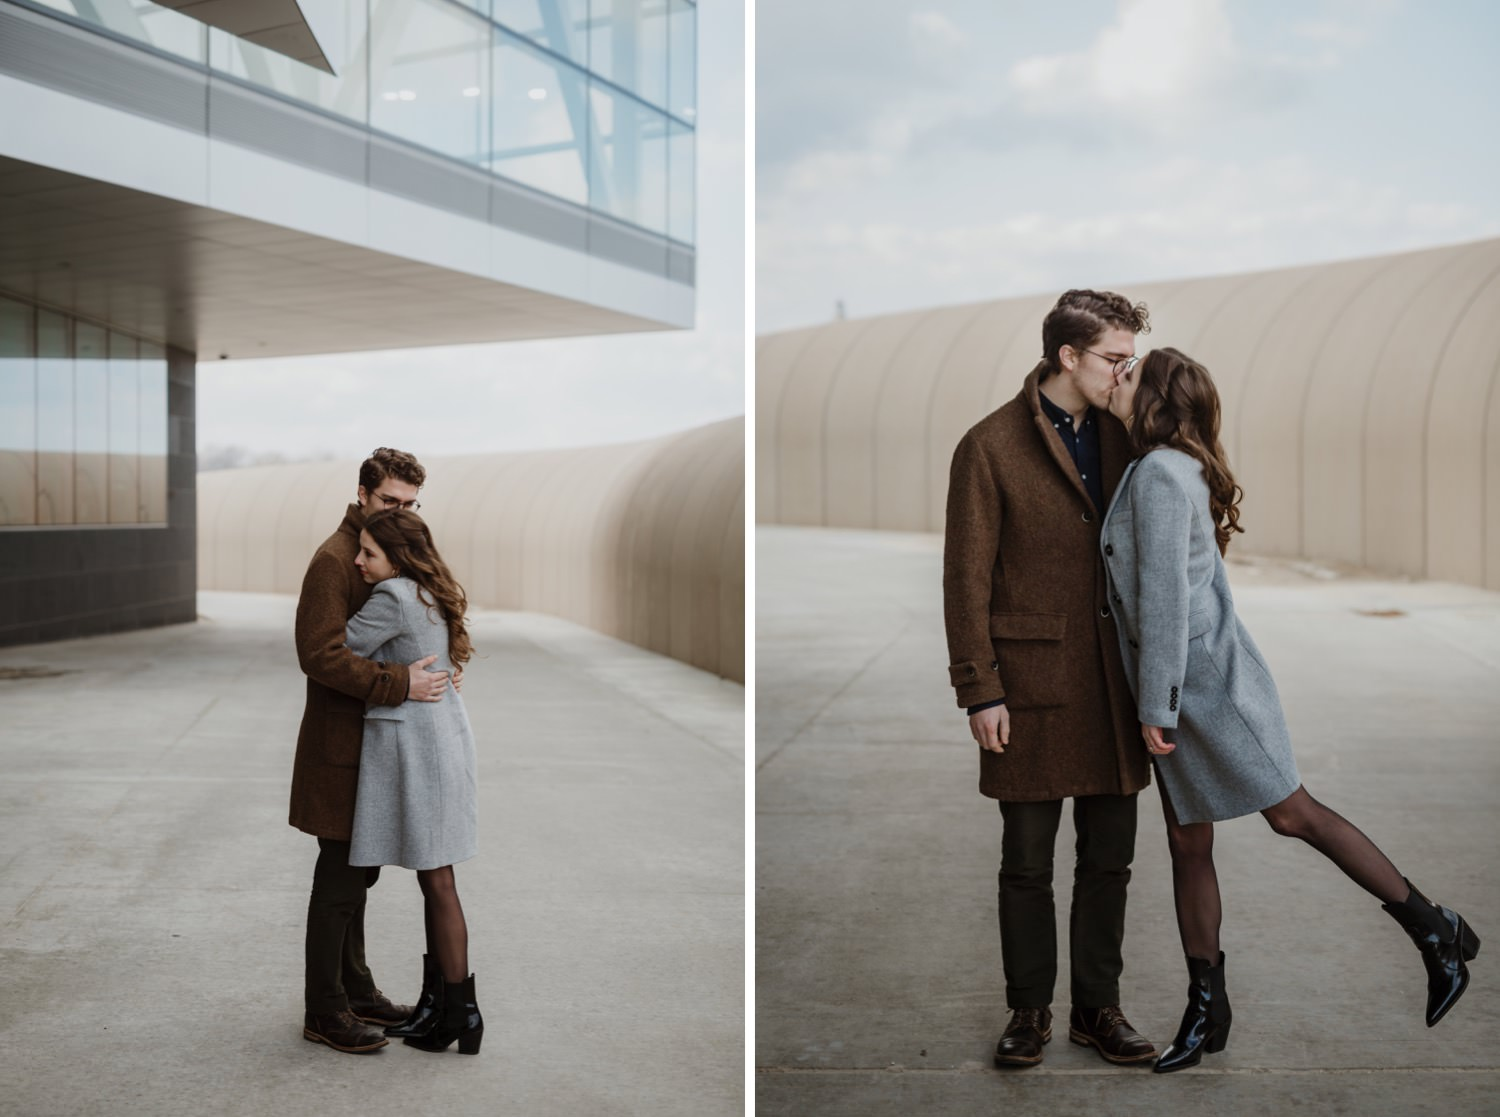 Couple hubs by Lake Michigan nears Northwester University in Evanston. Photograph taken during their engagement session the early spring